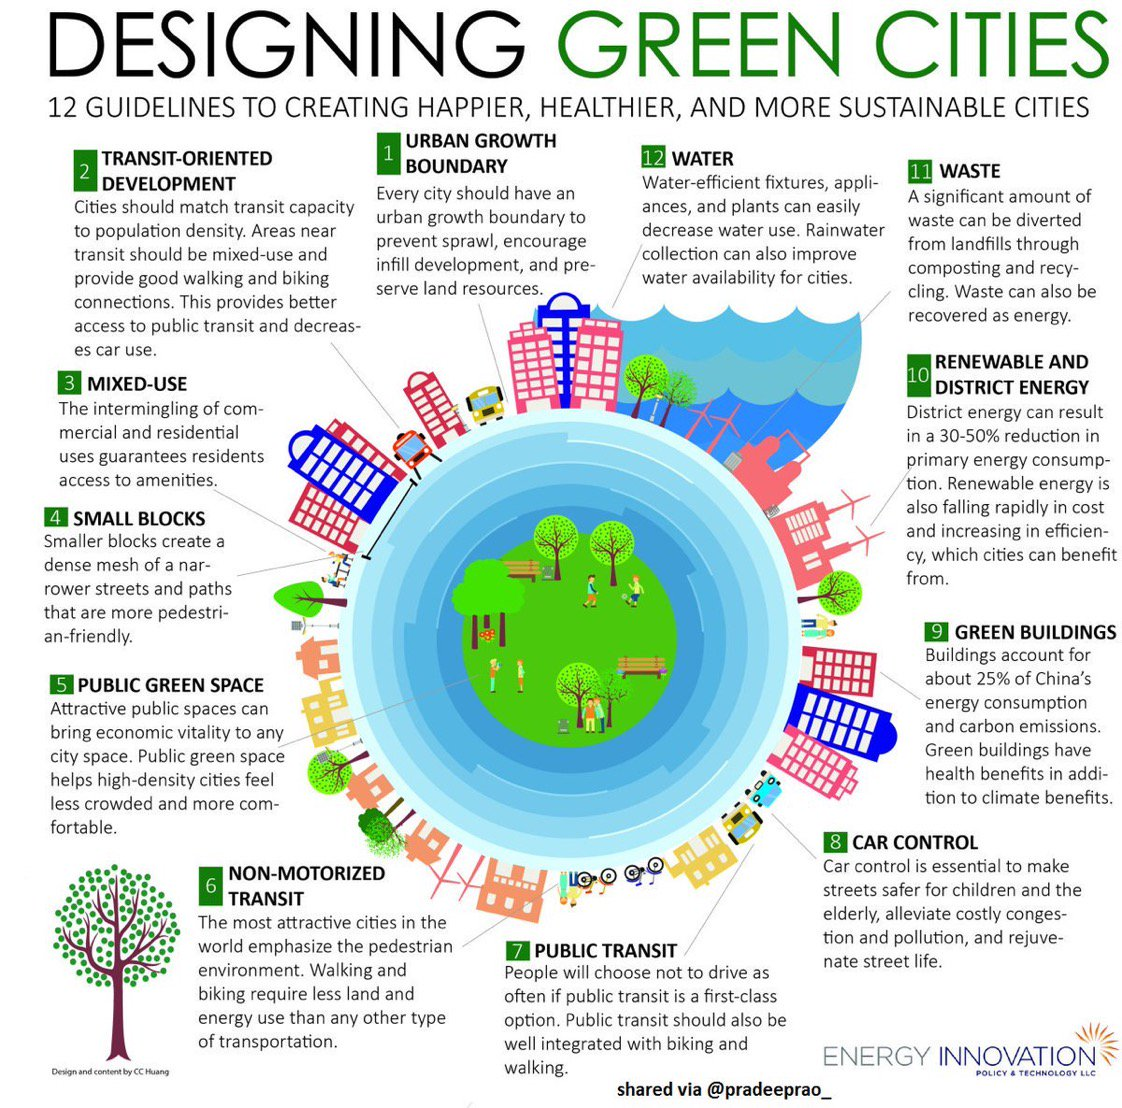 [ #SmartCity] 12 Guidelines to create Green Cities #Infographic  #SmartCities #IoT #BigData #Cloud #AI #MachineLearning #infosec<br>http://pic.twitter.com/MyjwJ7rUDF